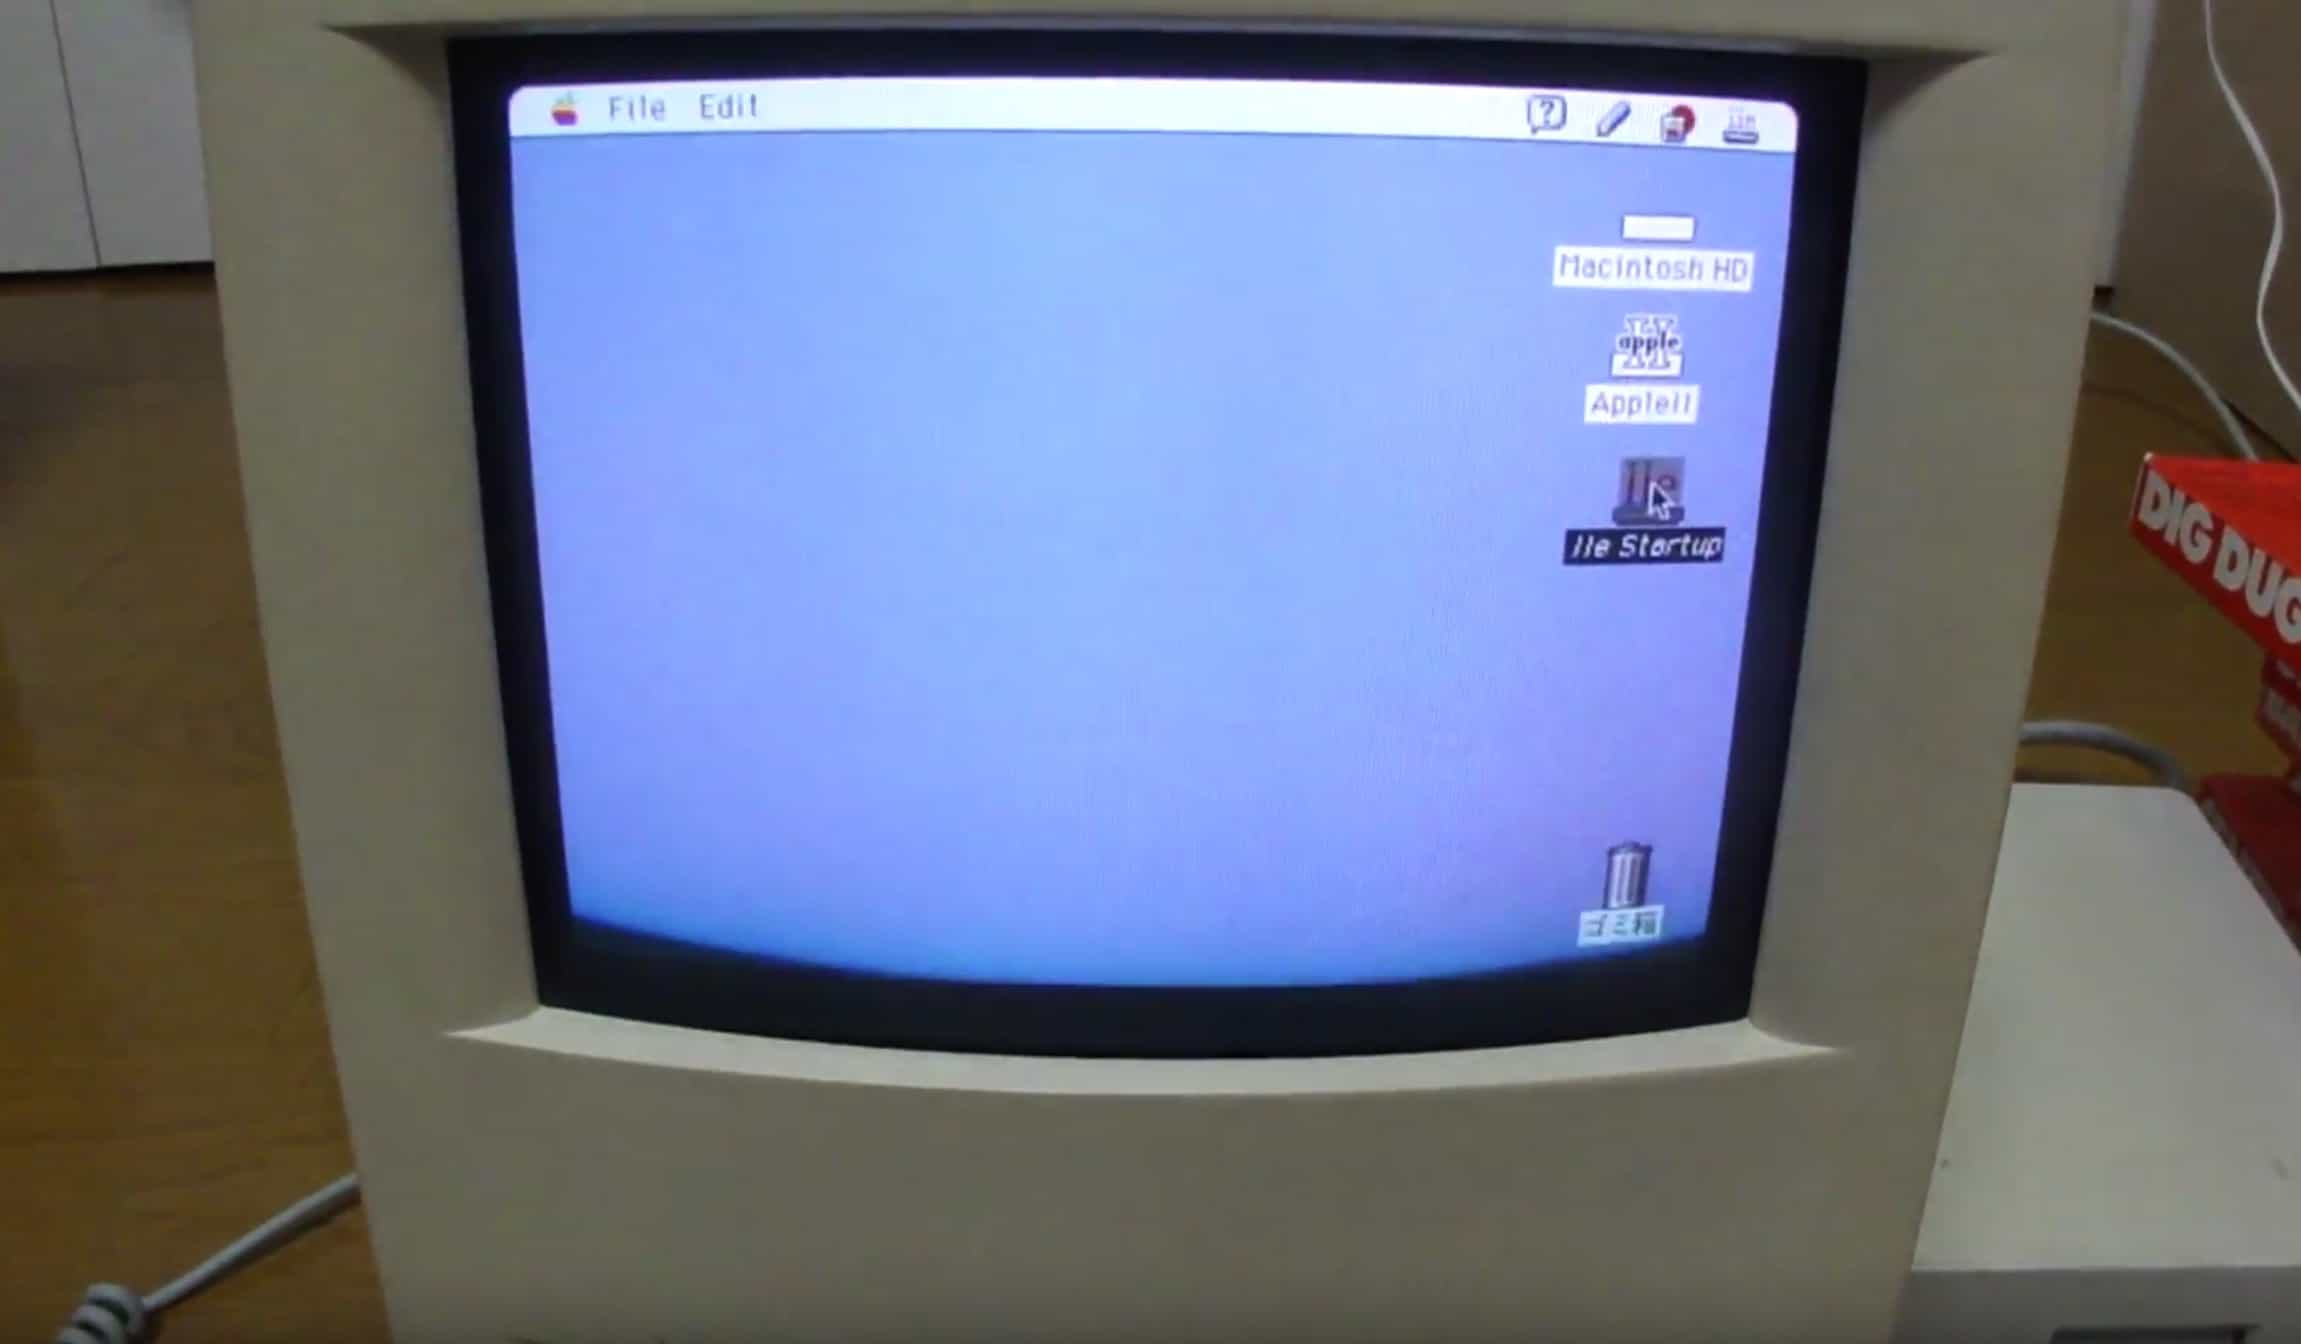 Running Apple II programs on a Mac with an Apple IIe Card was pretty darn awesome.